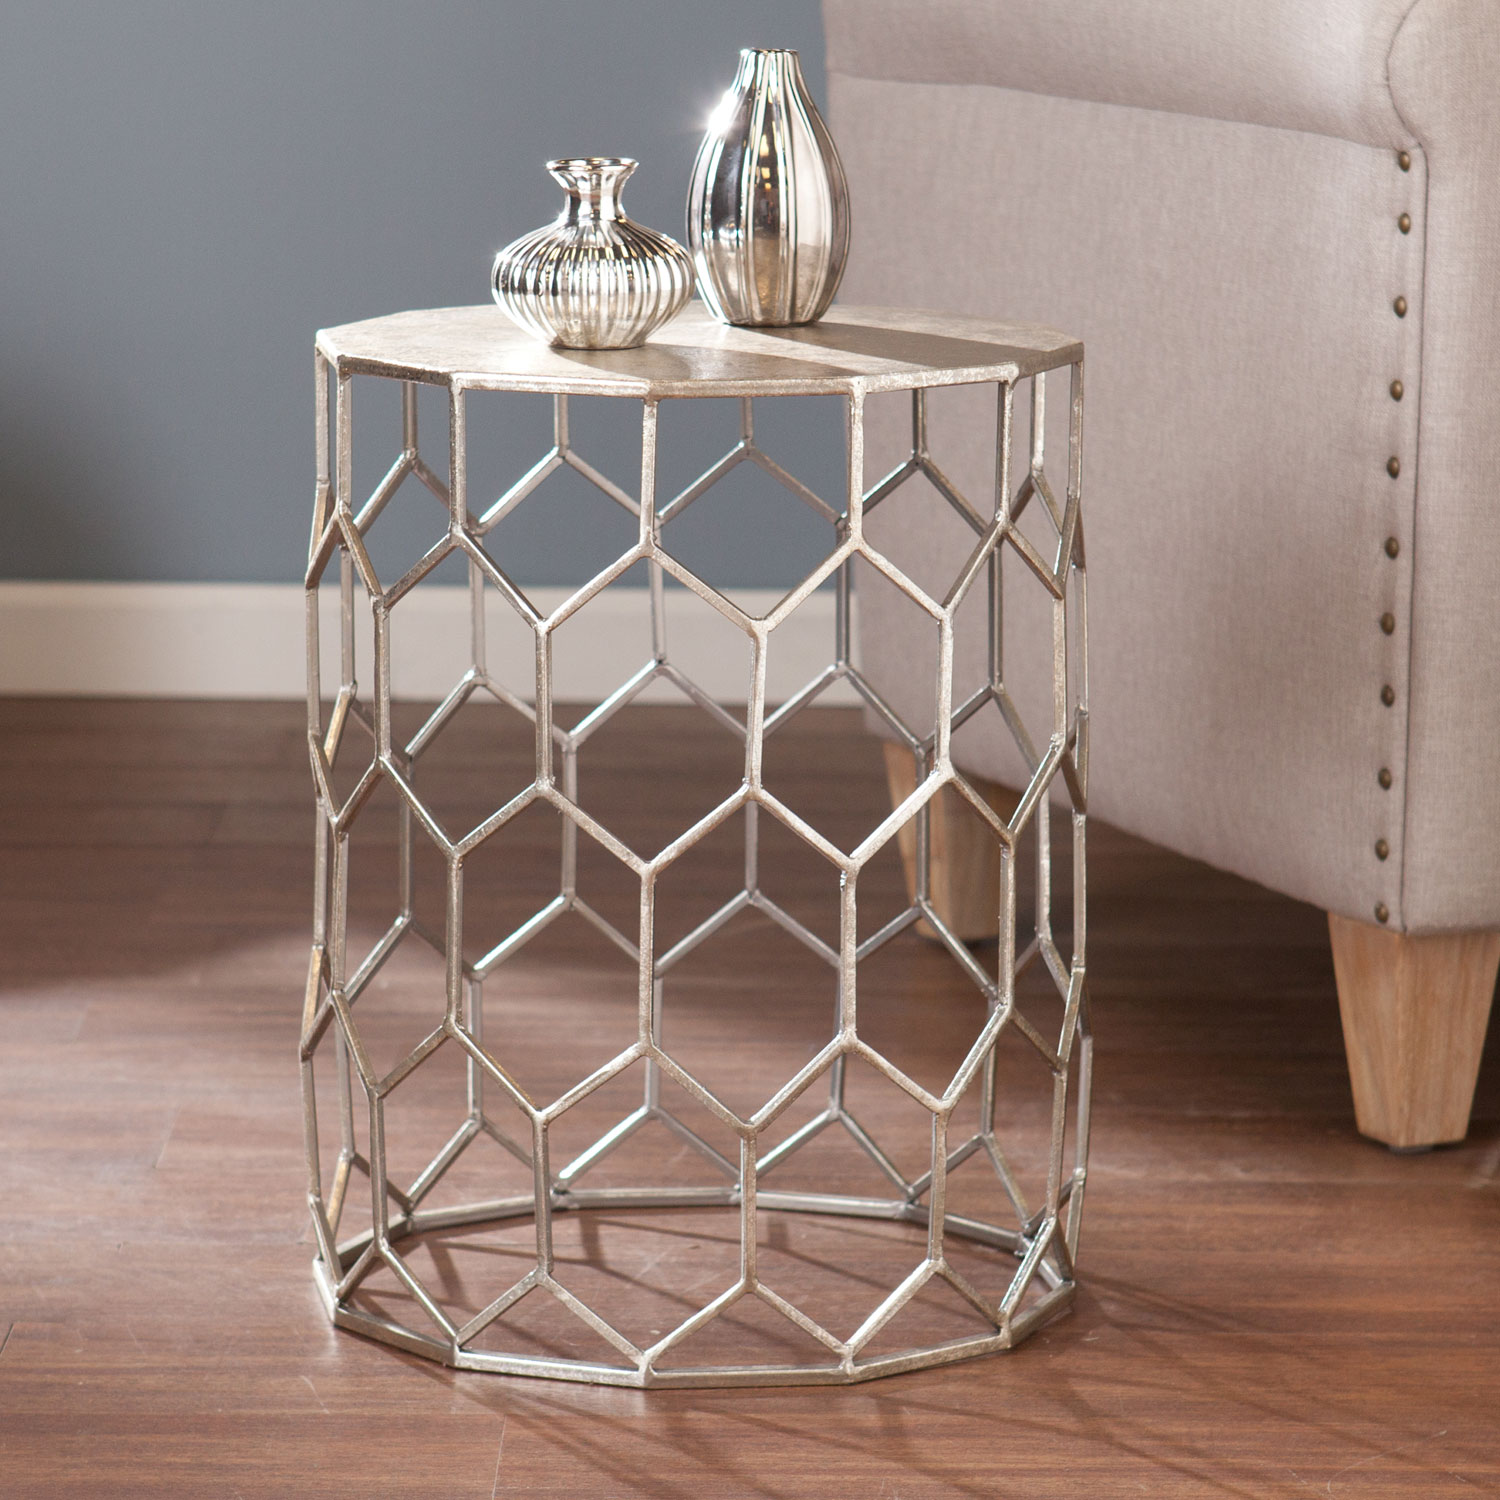 southern enterprises clarissa metal accent table bellacor hover zoom office floor lamps outside storage bench placemat ashley furniture chairside end brass ship lights lounge